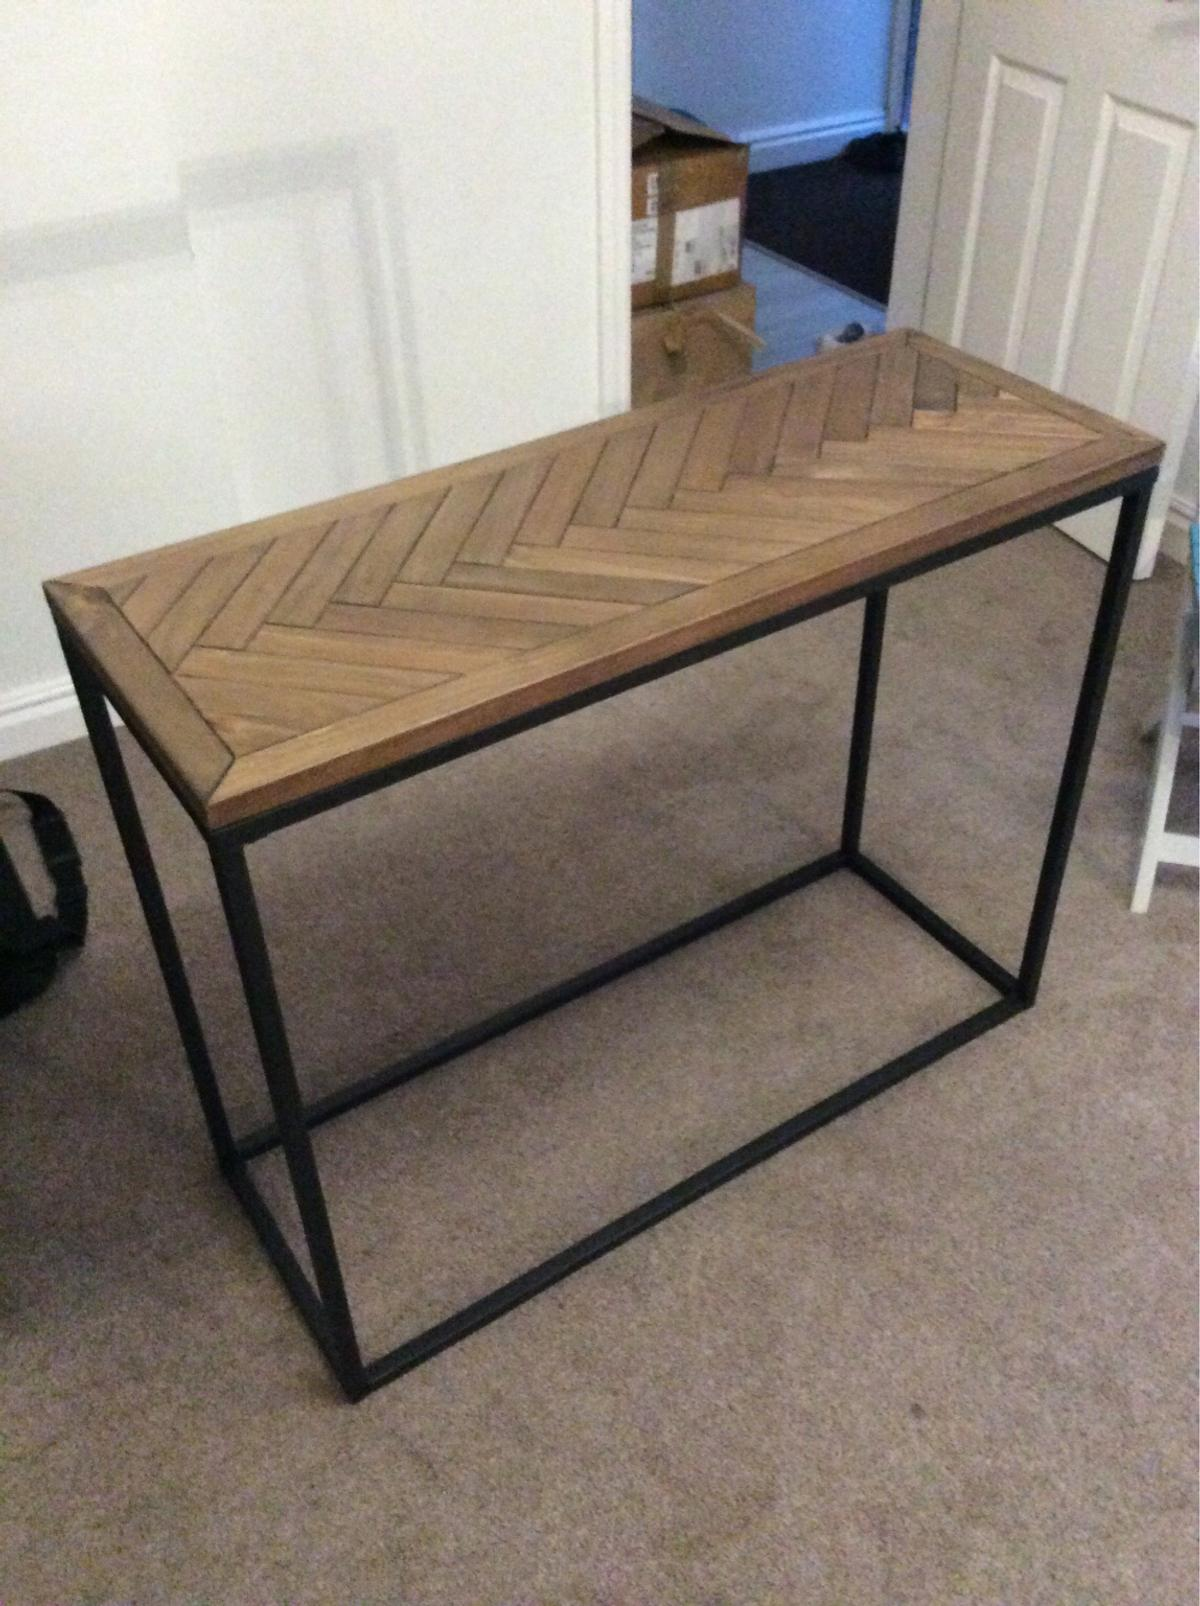 La Redoute Nottingham Parquet Table In B97 Redditch For 55 00 For